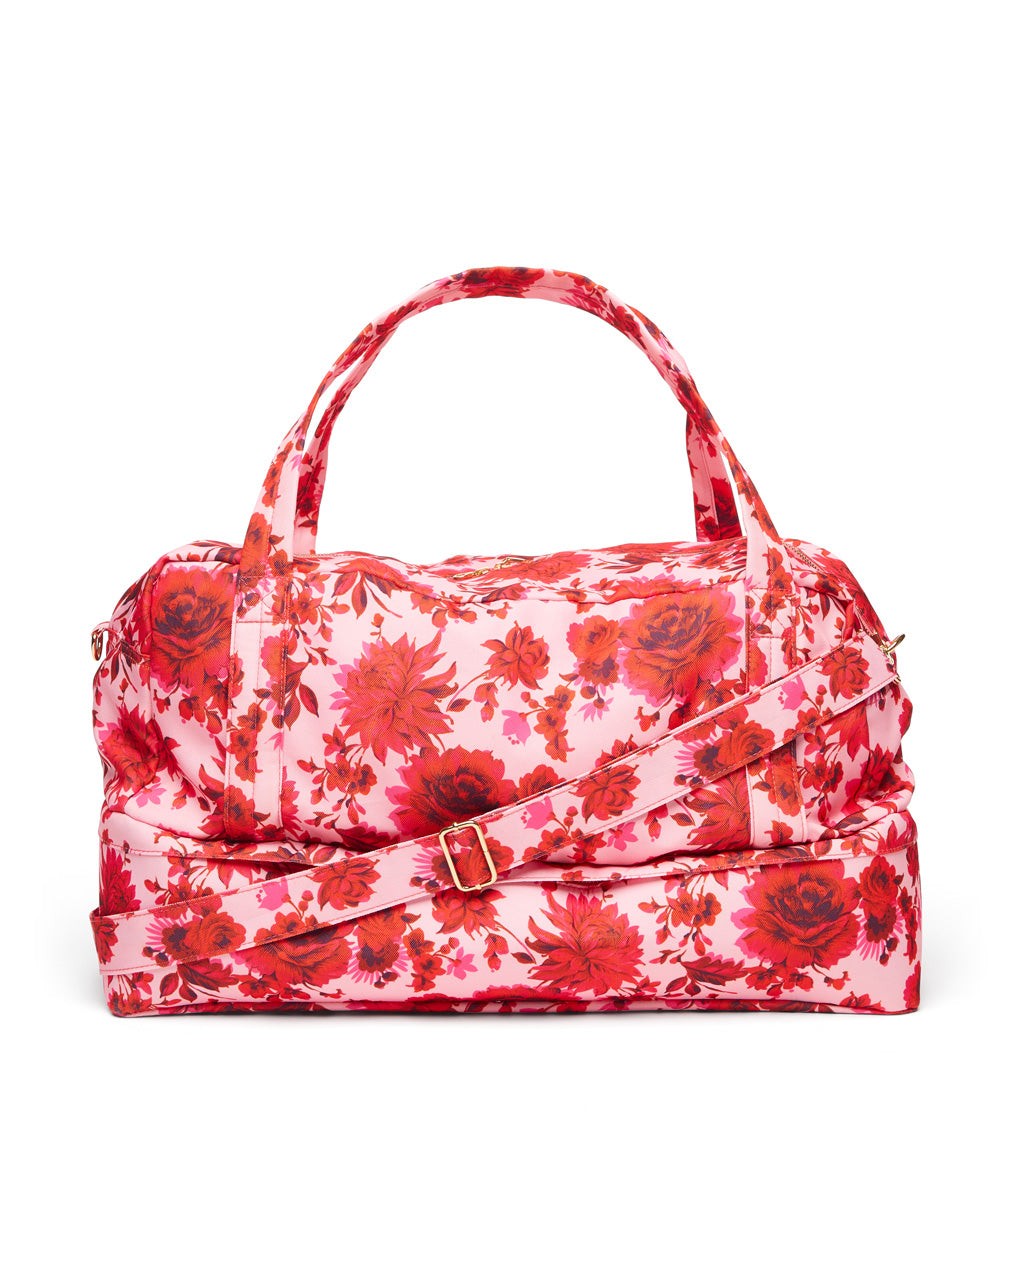 Pink floral travel bag.